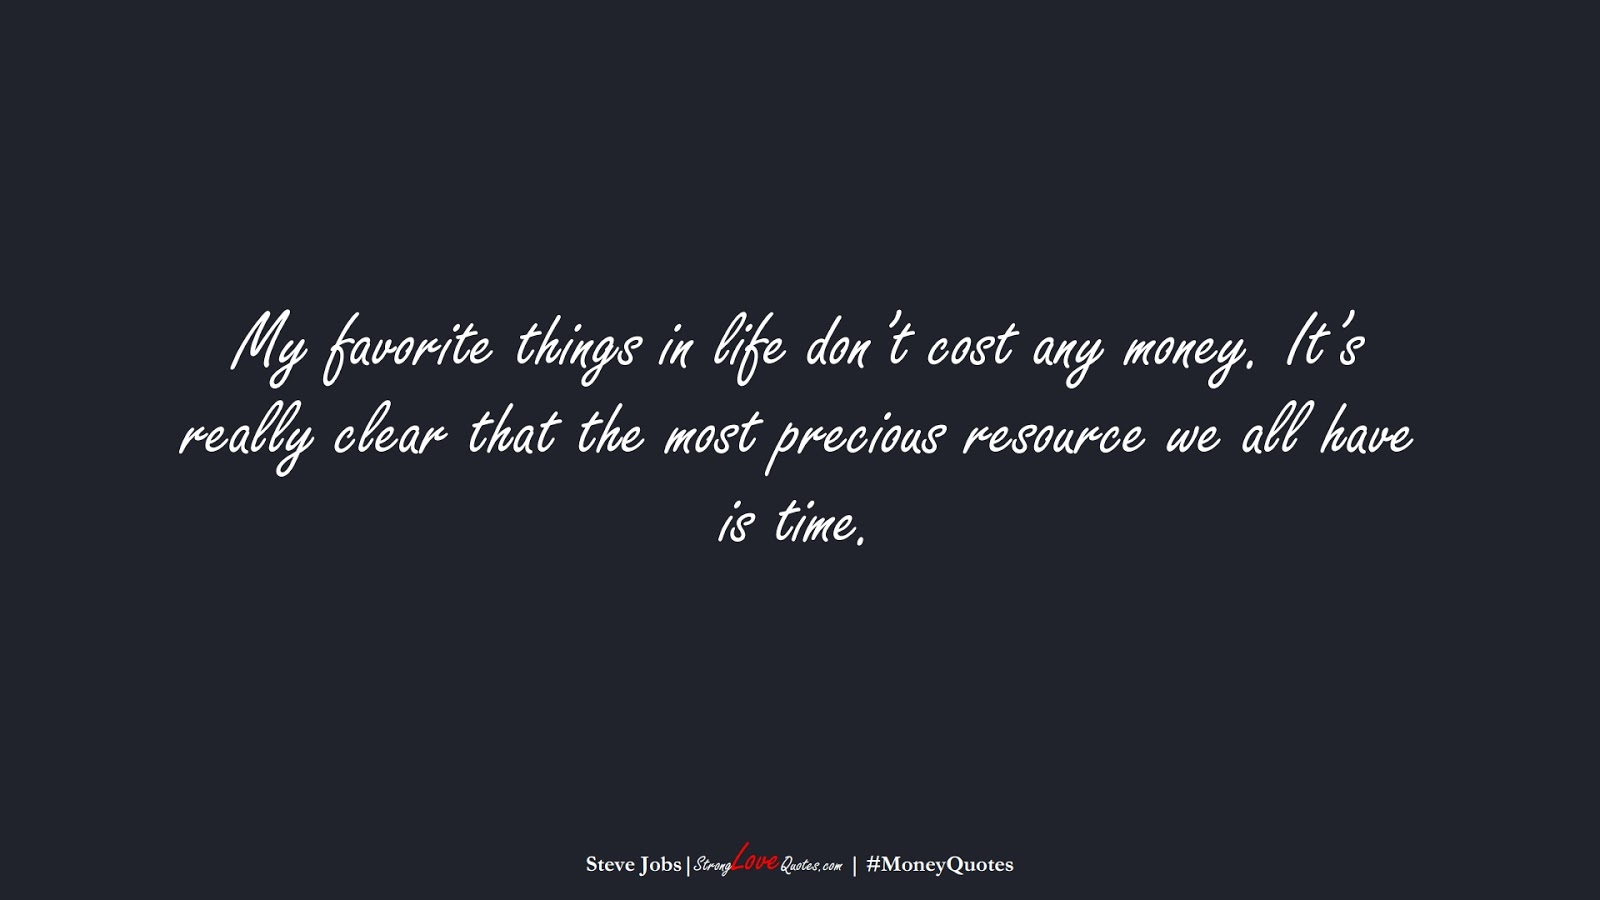 My favorite things in life don't cost any money. It's really clear that the most precious resource we all have is time. (Steve Jobs);  #MoneyQuotes